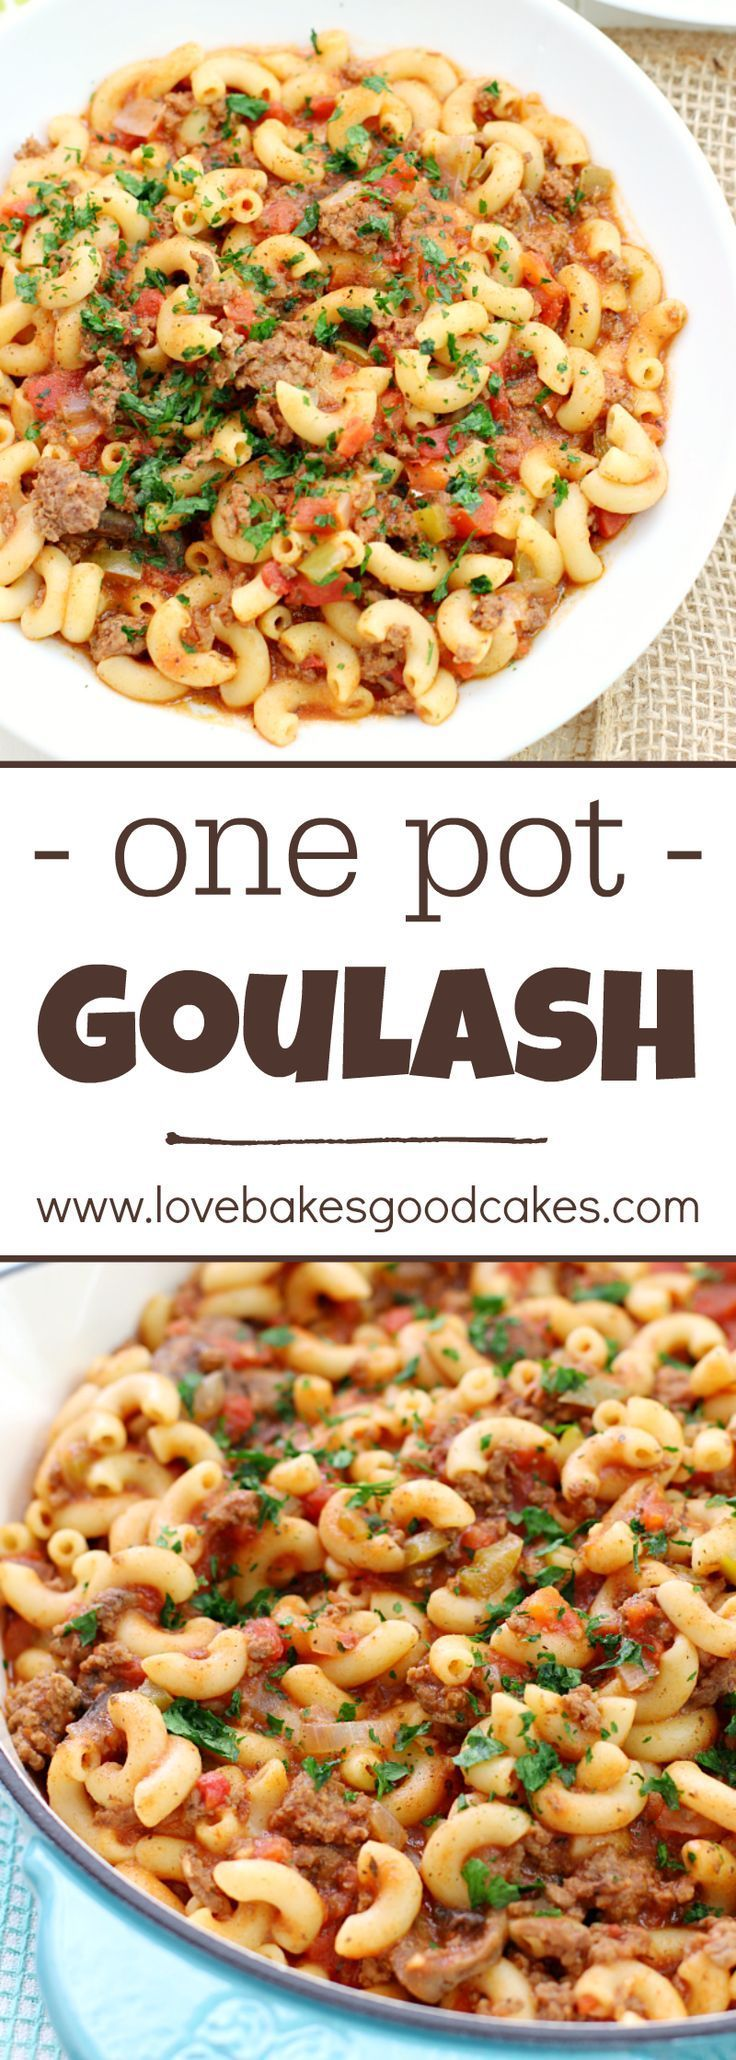 This One Pot Goulash is comfort food that will remind you of Grandma's kitchen! A hearty and satisfying dish!